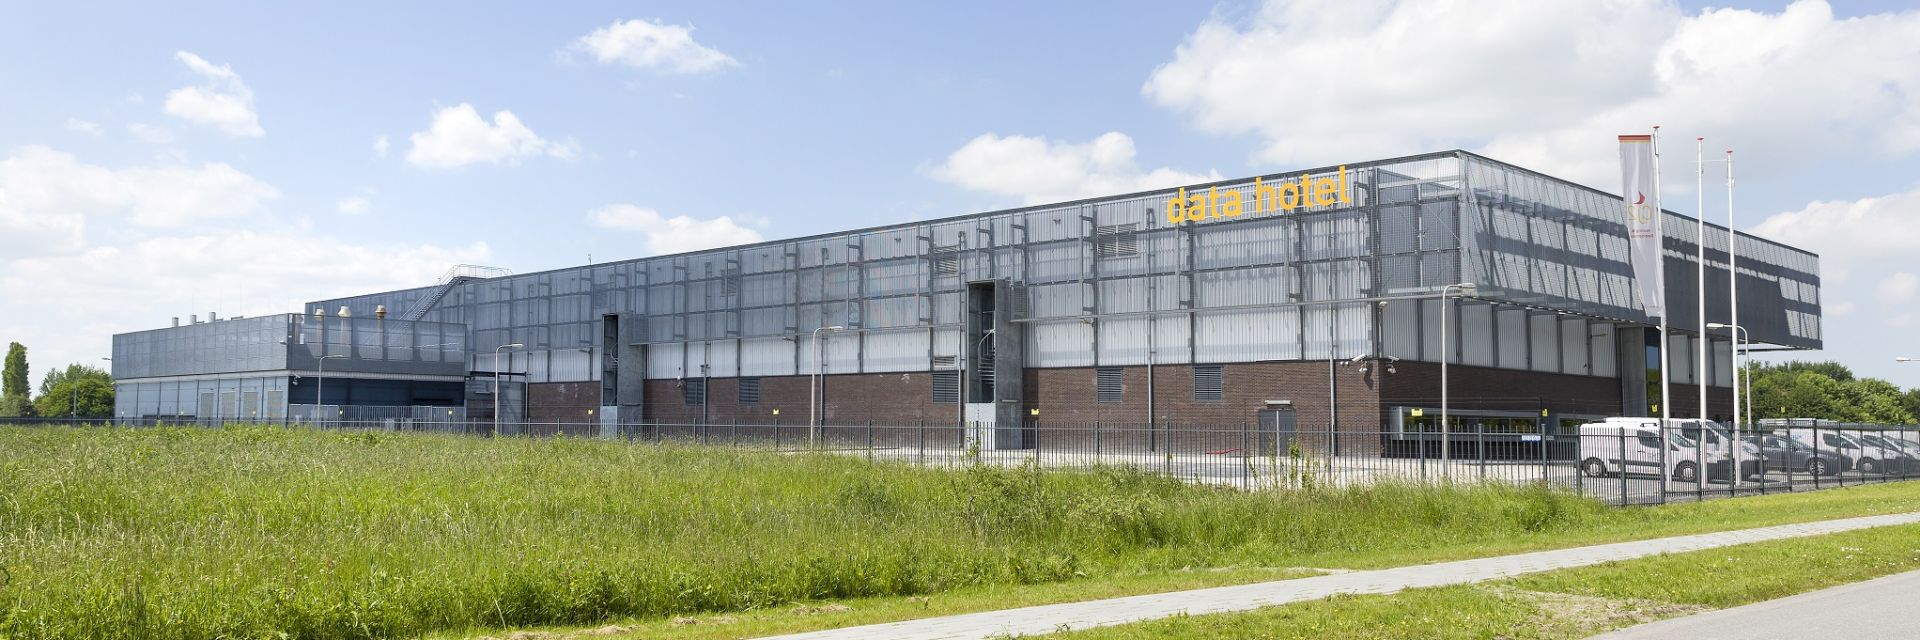 American QTS buys data centers on Zernike Campus and in Eemshaven